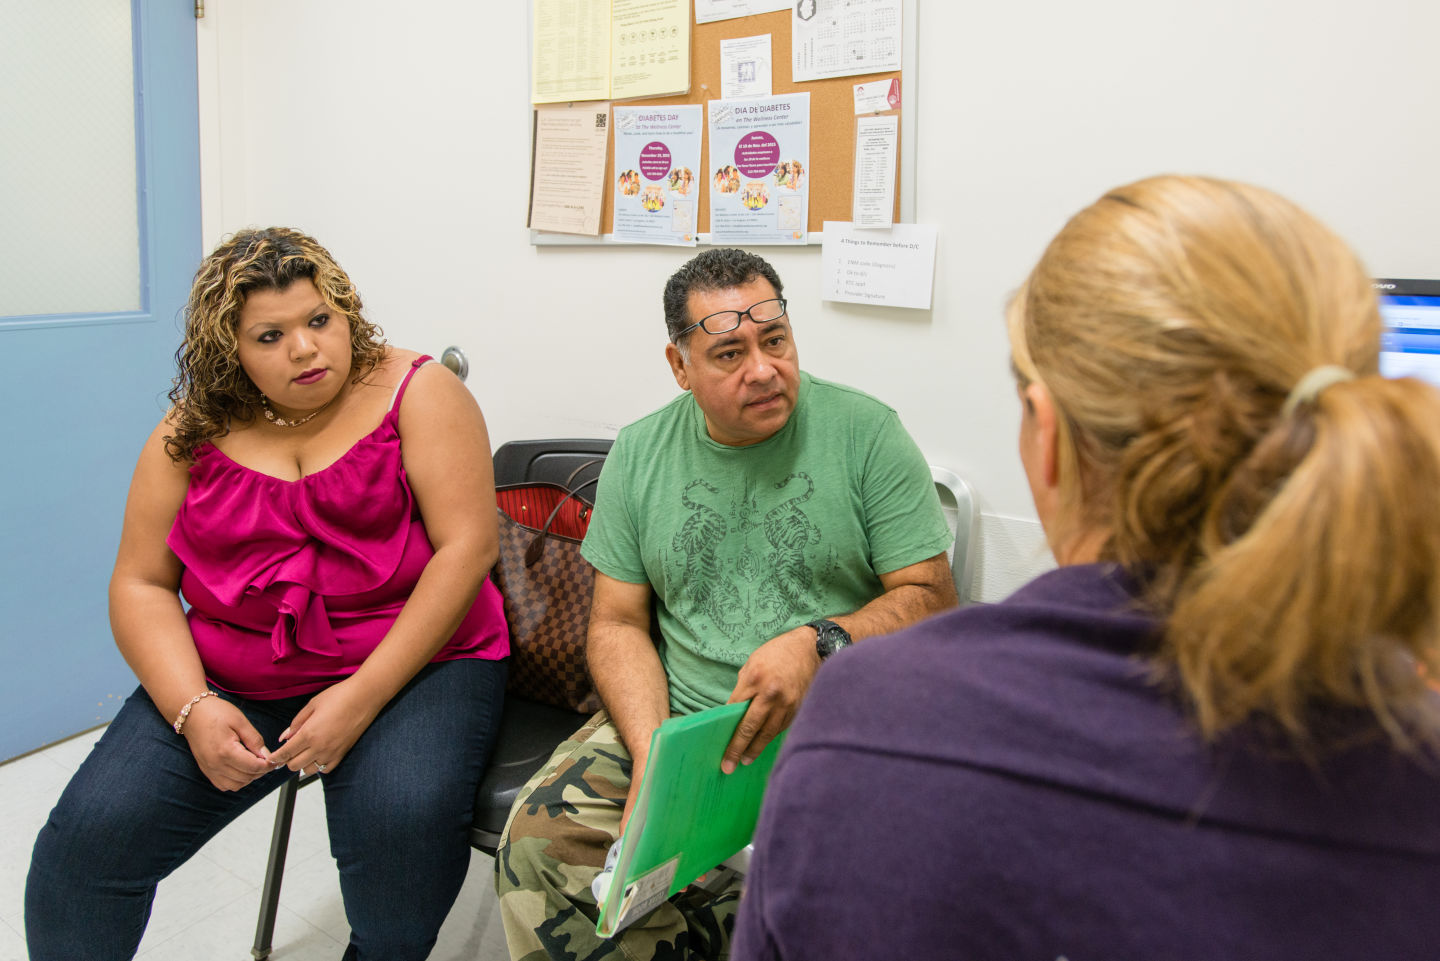 For L.A.'s Neediest Patients, the Most Important Person May Not Be A Doctor